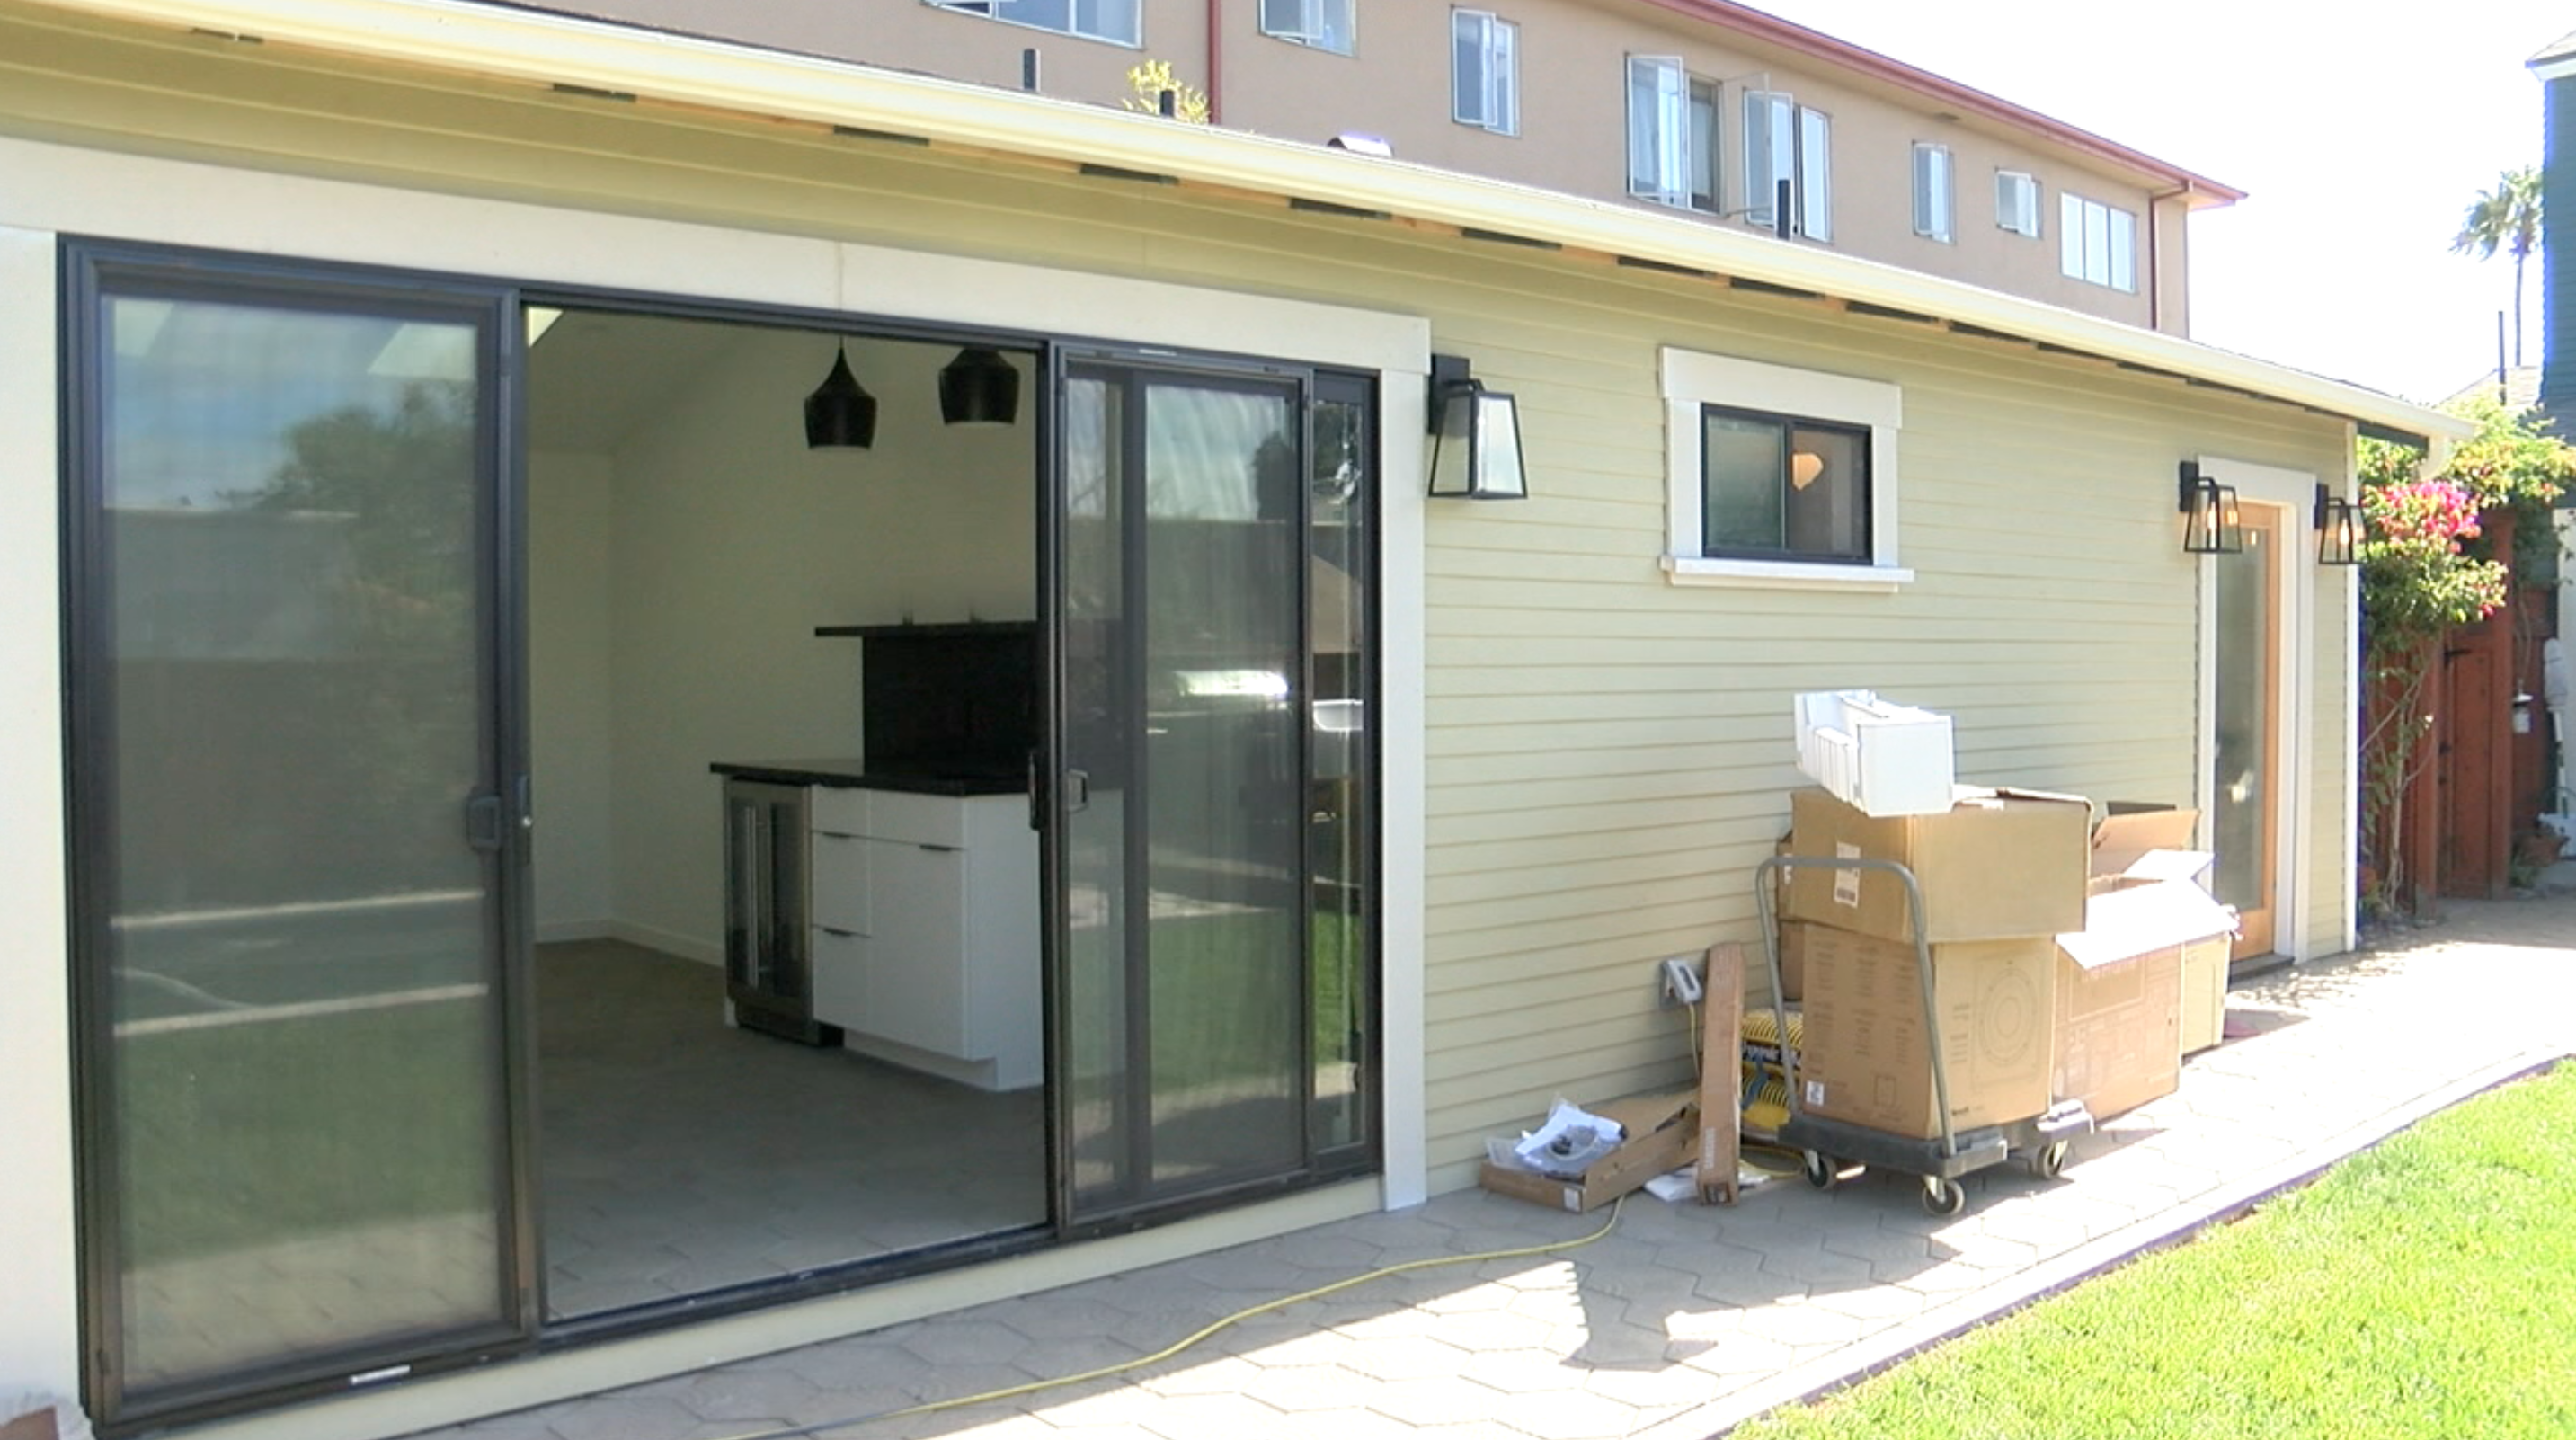 San Diego Homeowners Creating Rentals By Converting Garages Into Apartments